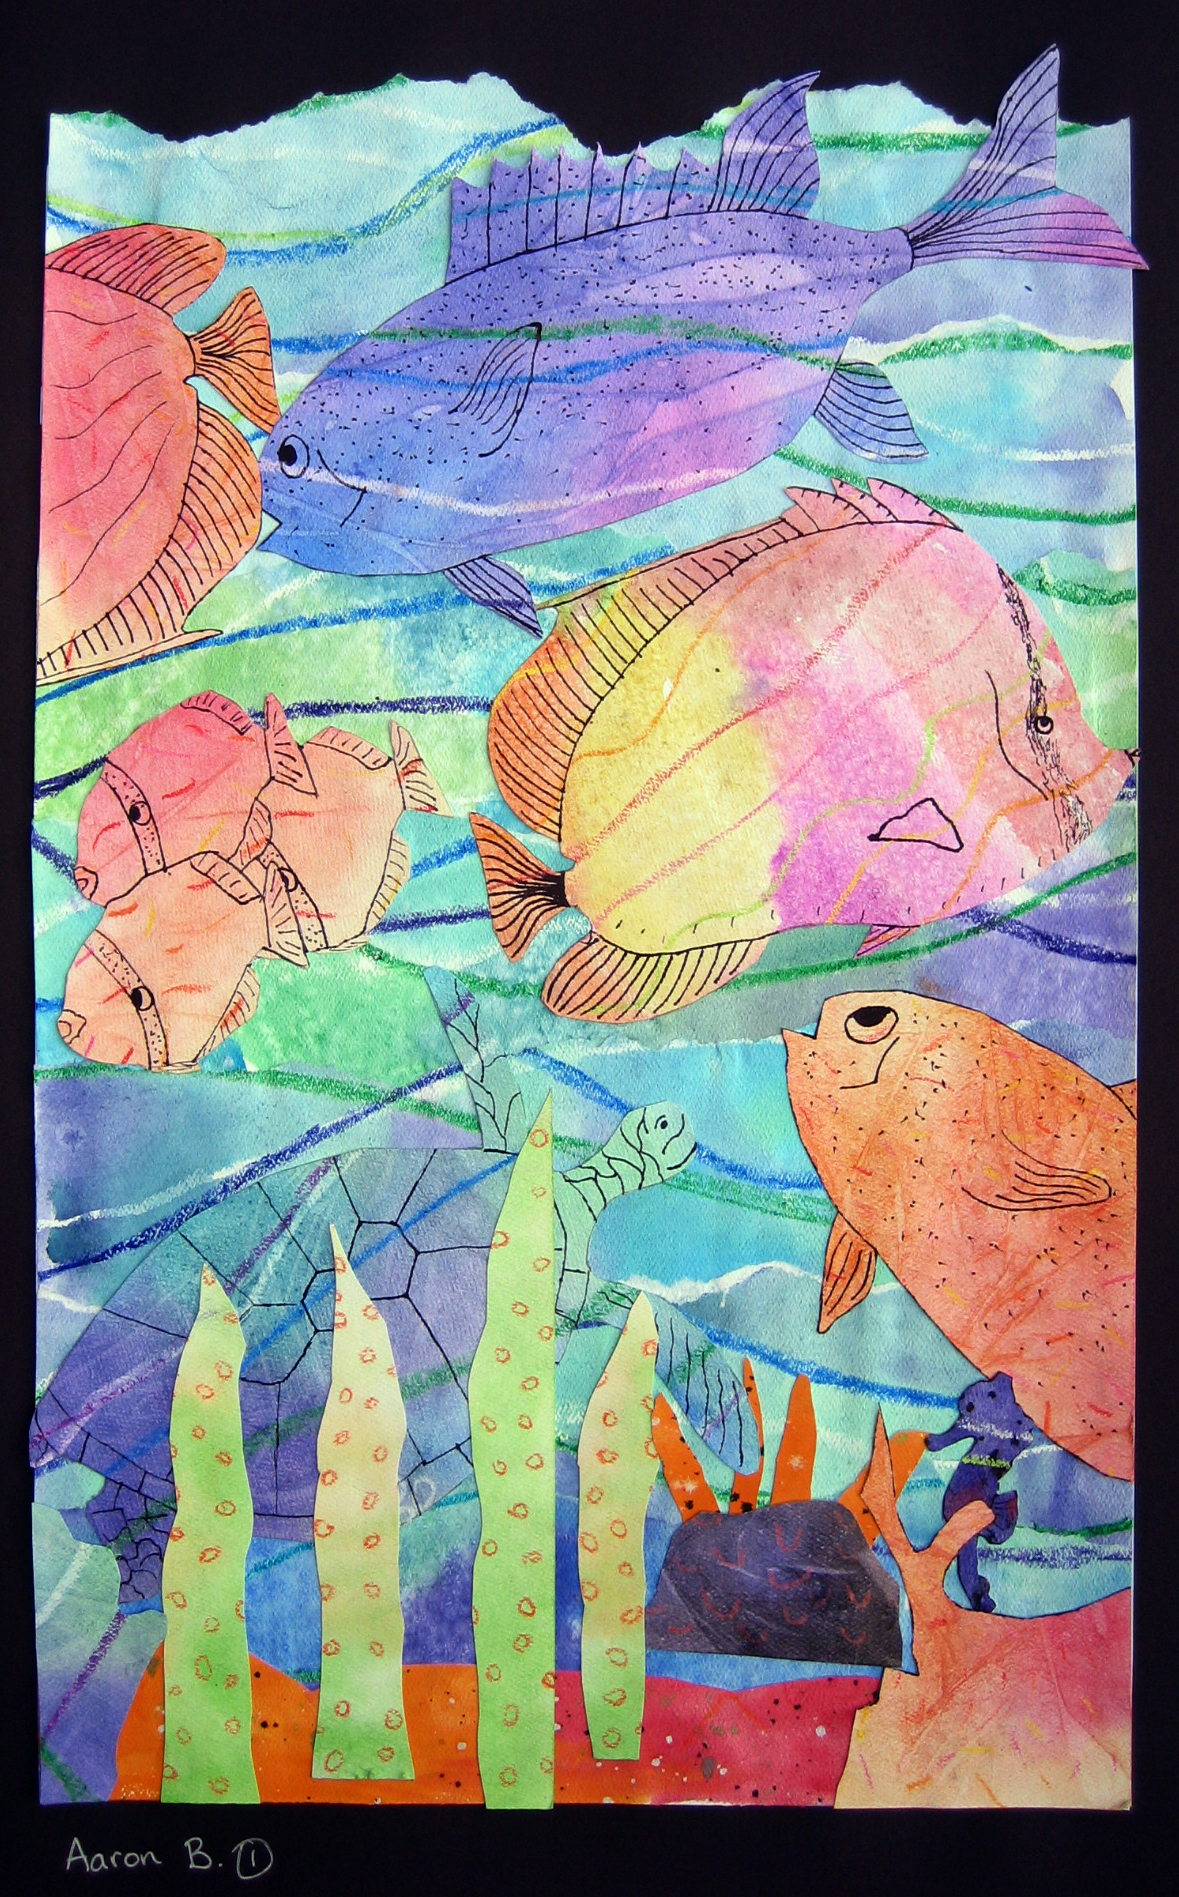 Watercolor Seascape Collages | Ms. Amsler's Artroom